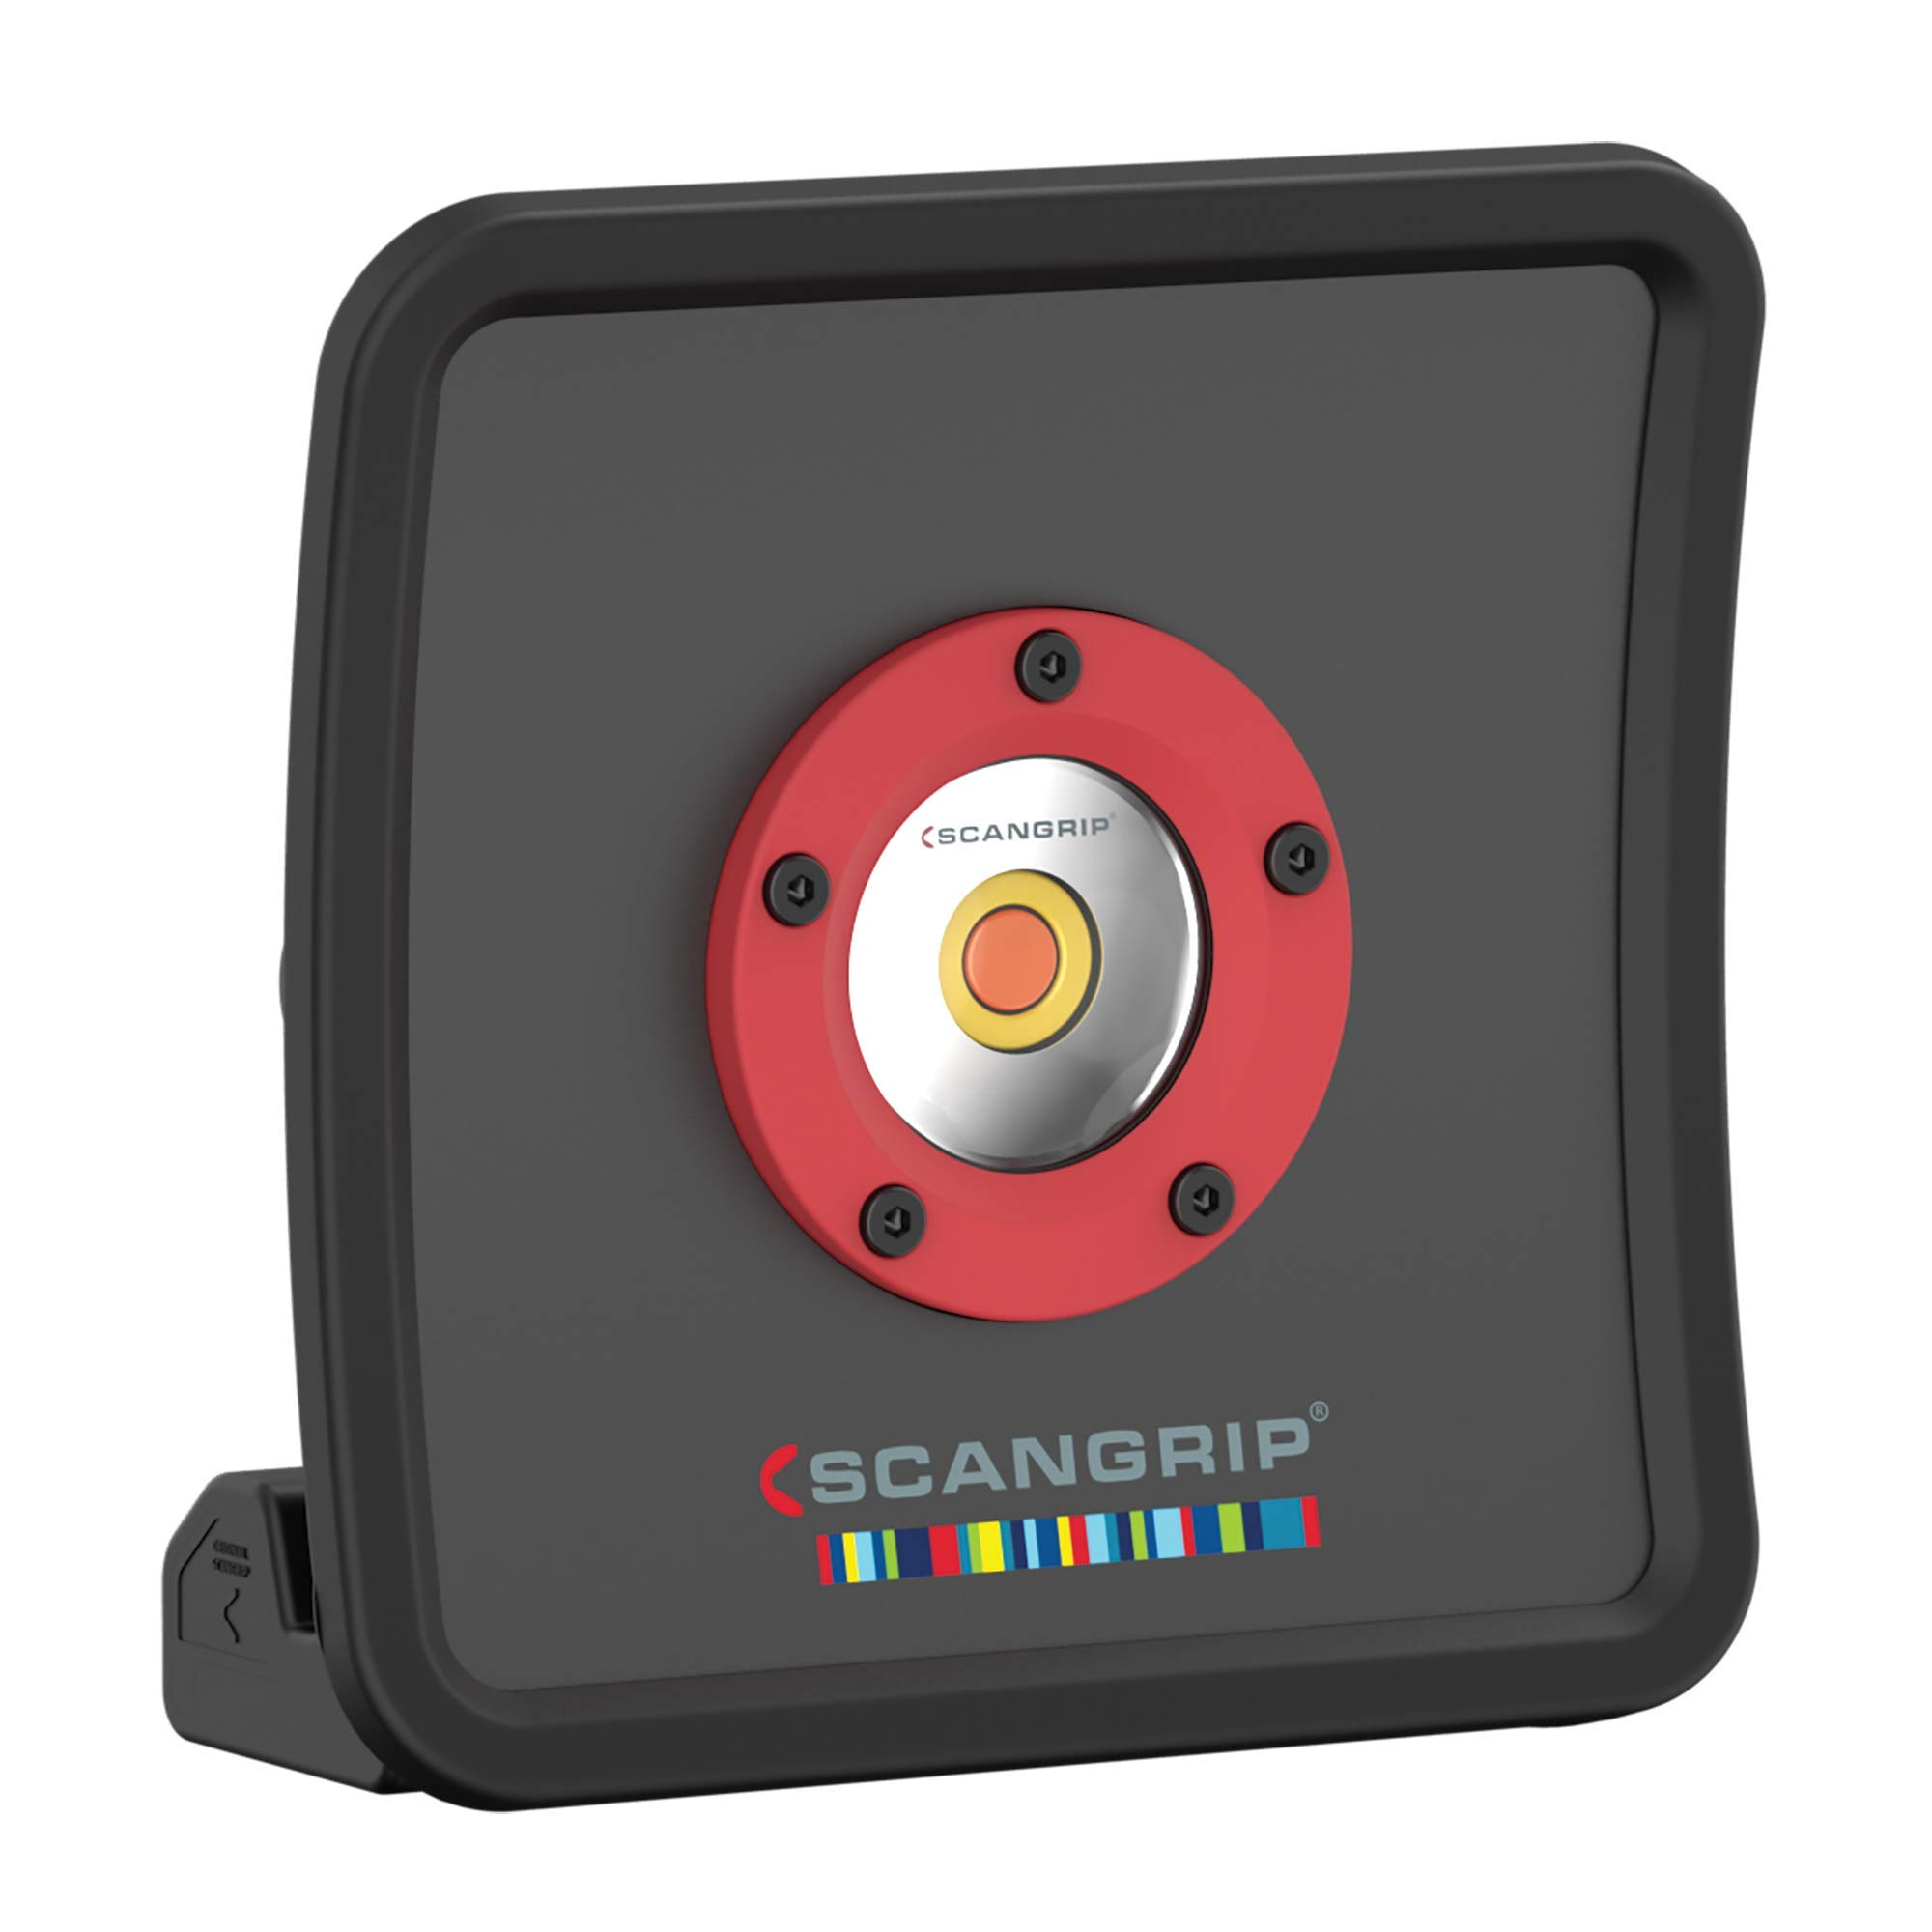 Scangrip MultiMatch R - Powerful and Handy Lighting Solution for Painting Industry, 1,200 Lumen LED Work Light by Scangrip